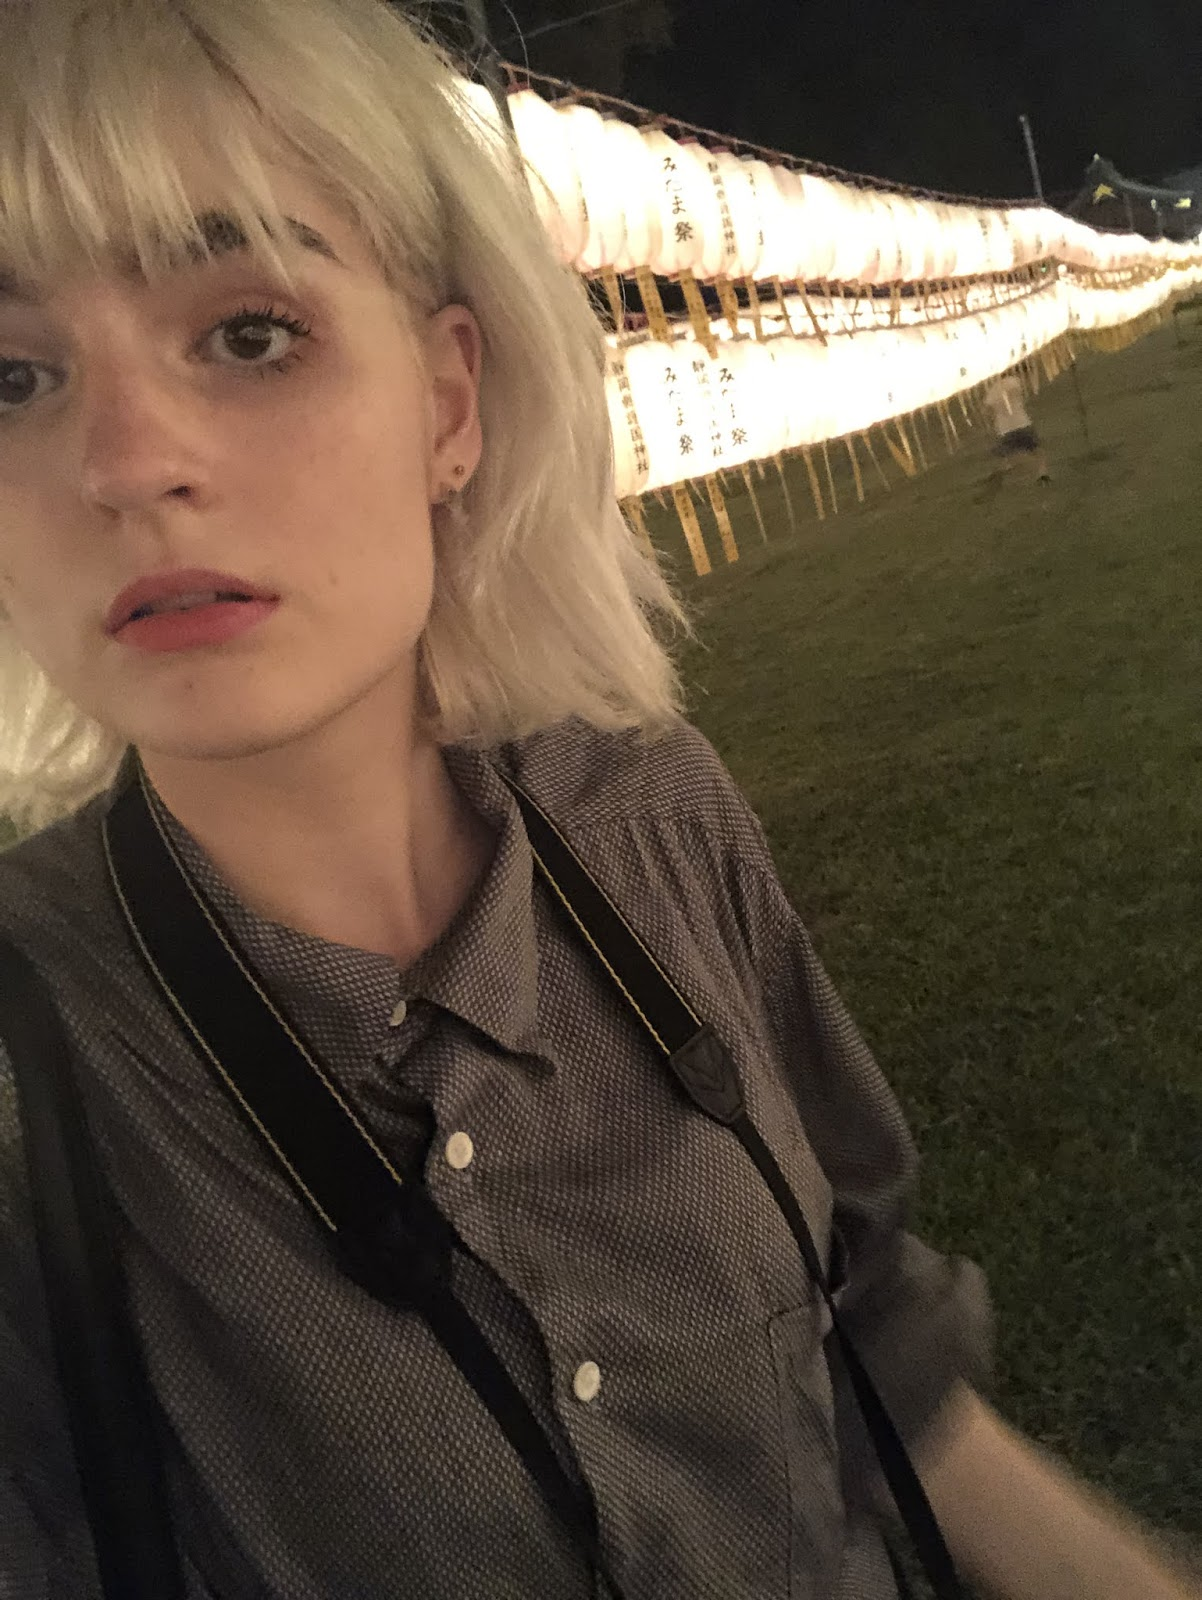 Girl with bleached silver hair in front of shrine lanterns